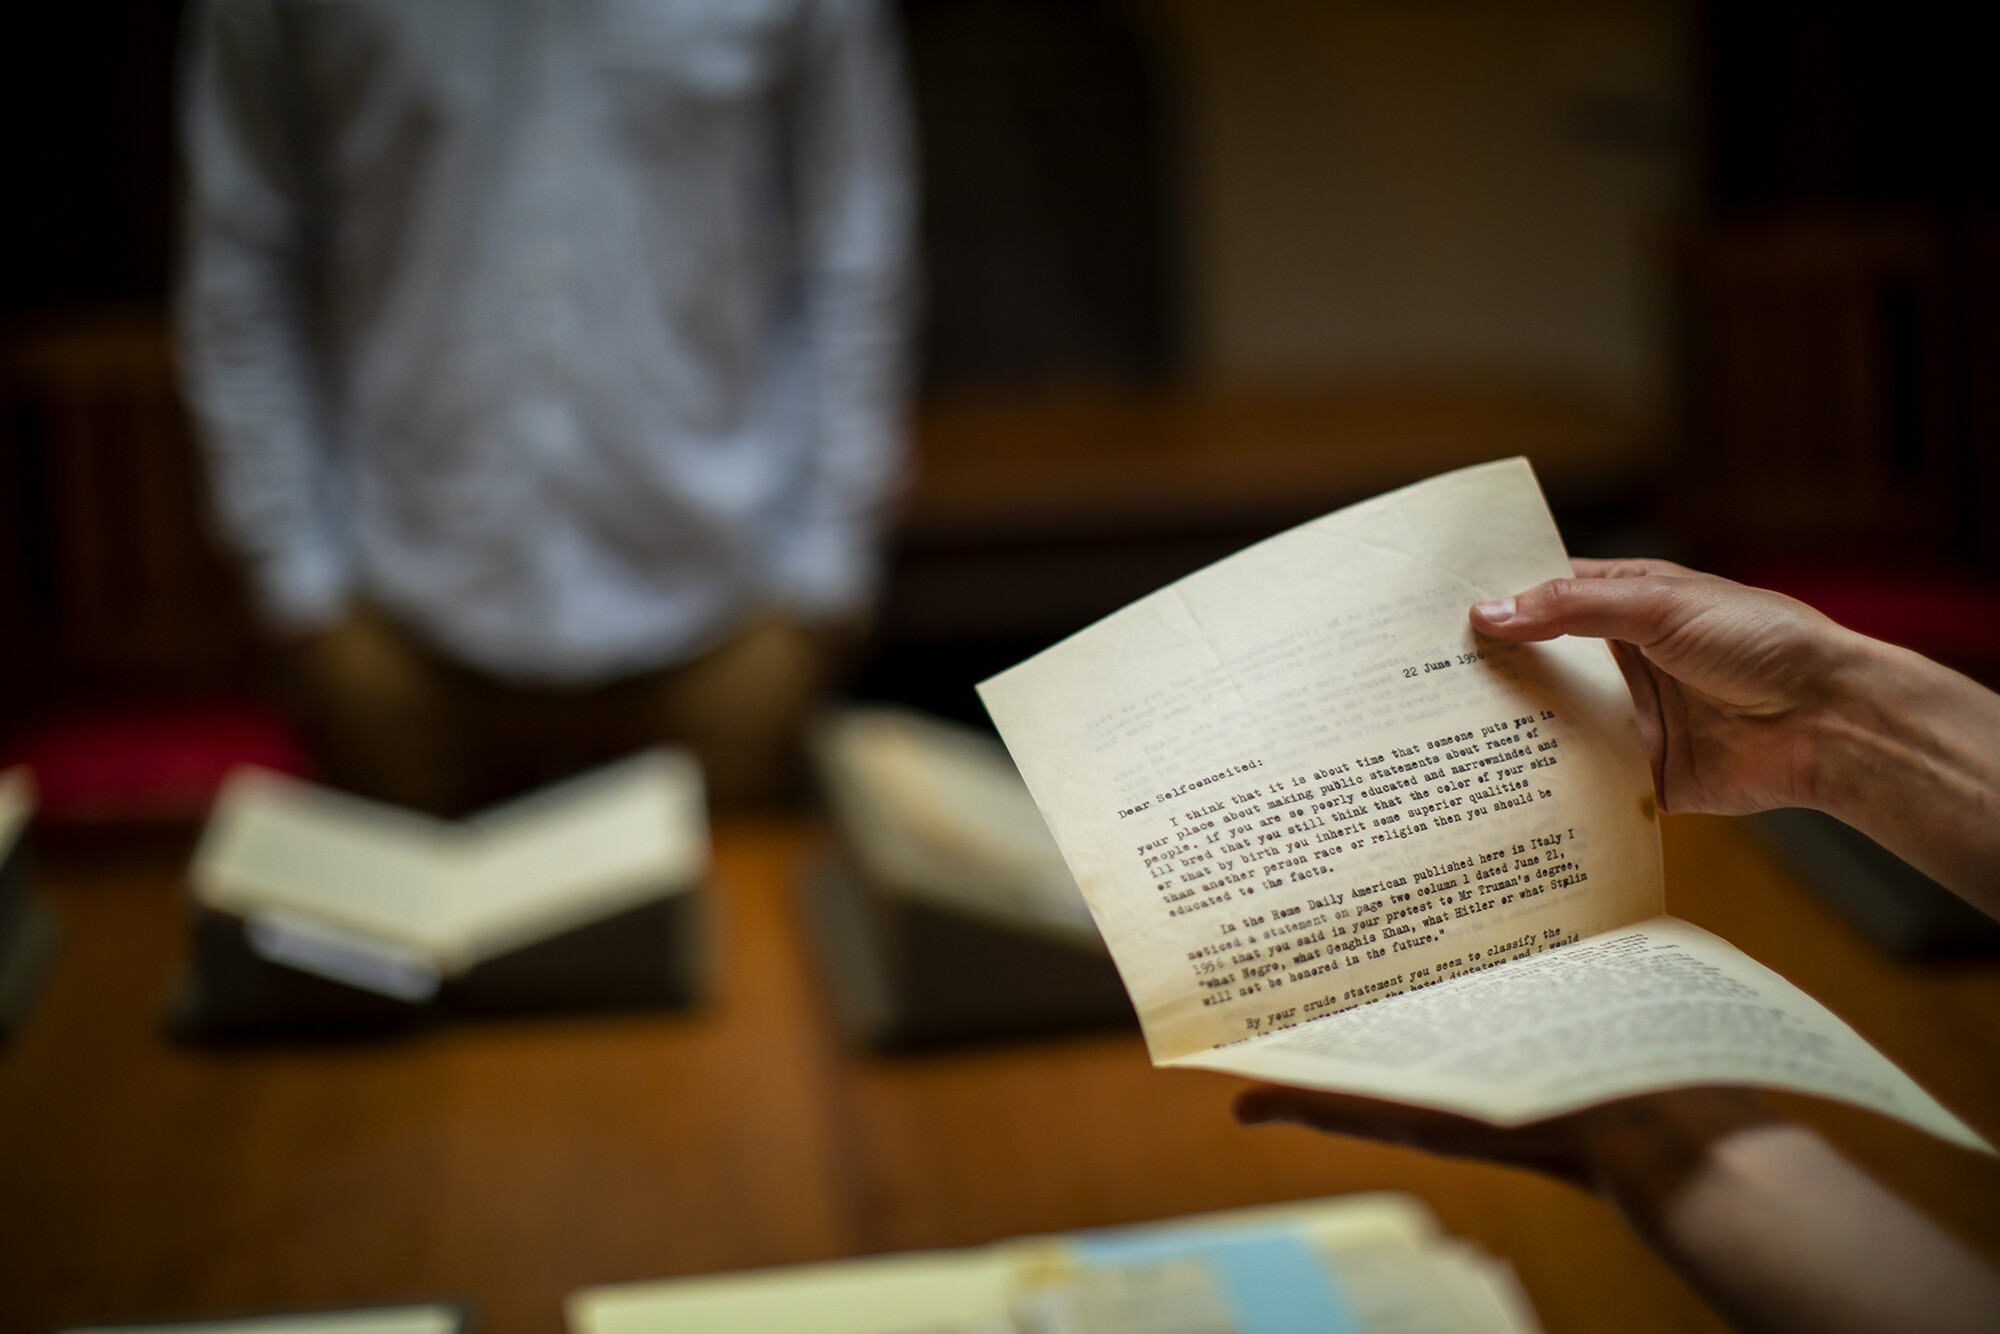 Typed letter, many pages thick, being held by two hands. A blurred figured standing in front of a book is in the background.